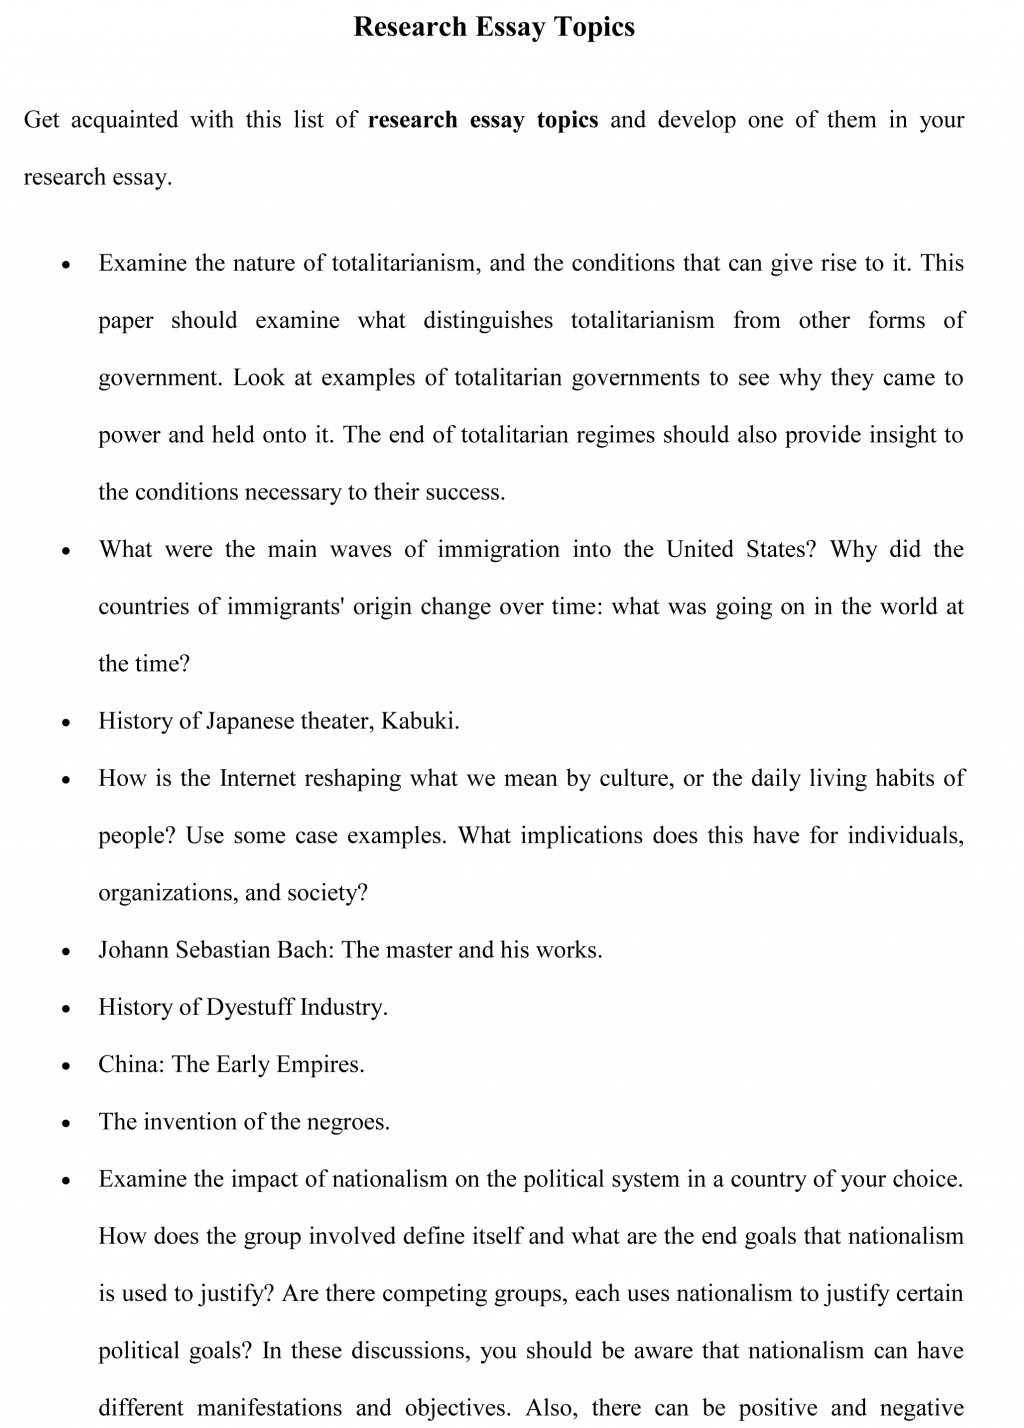 002 American Literature History Research Paper Topics Essay Surprising Large